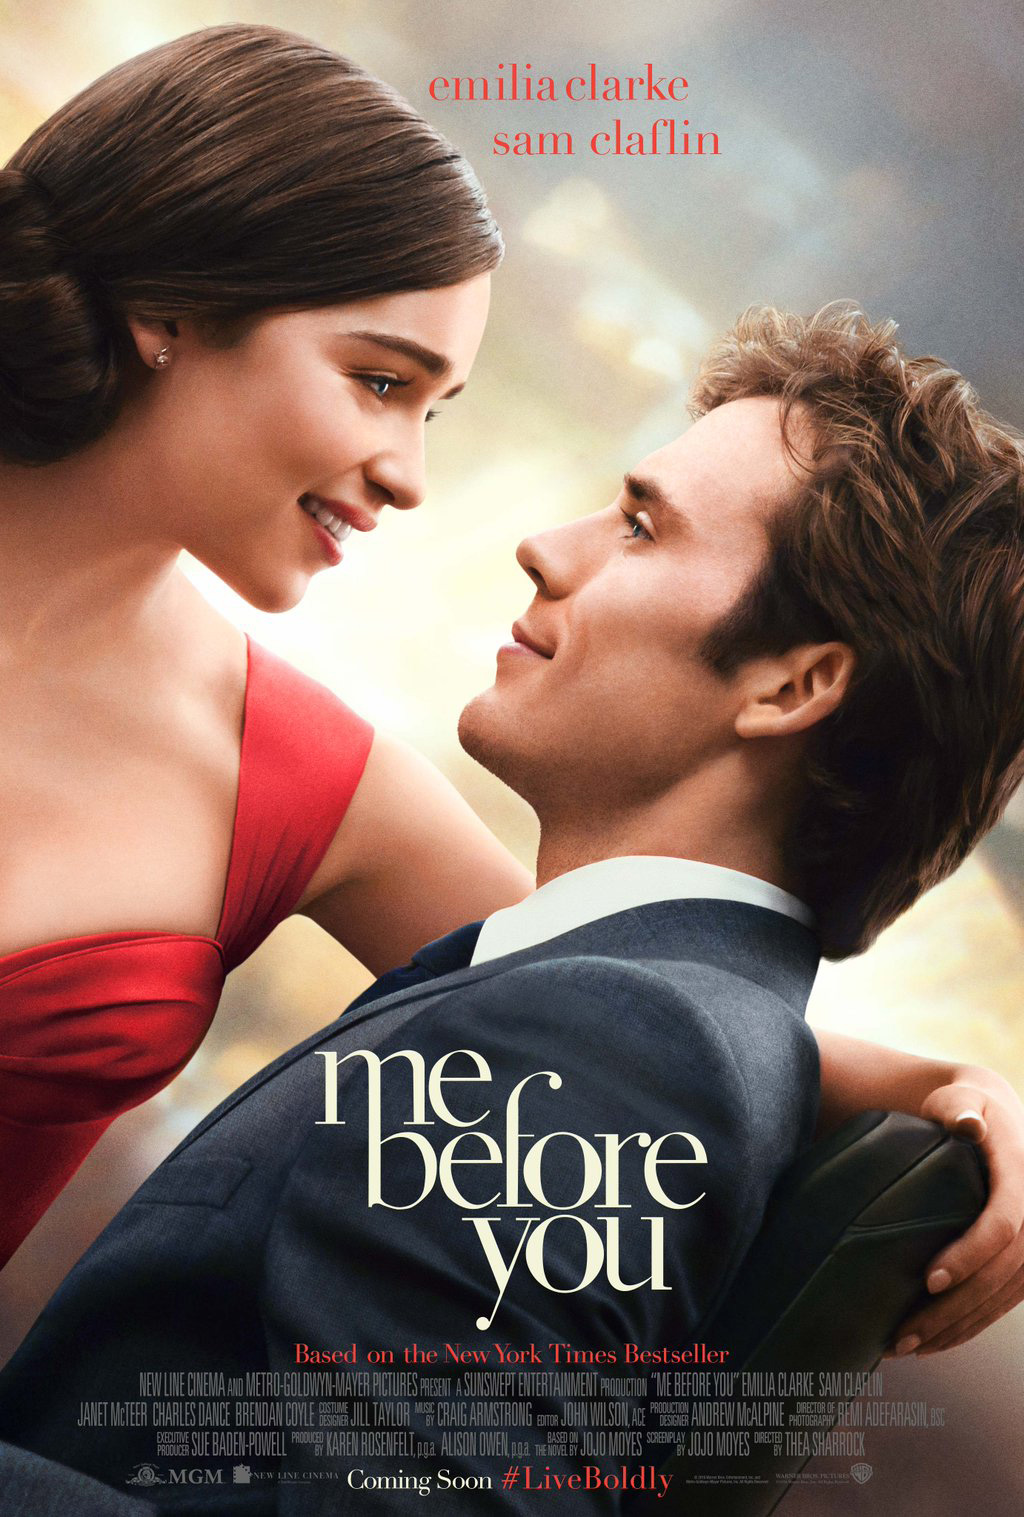 Free Cinema Tickets To See Me Before You